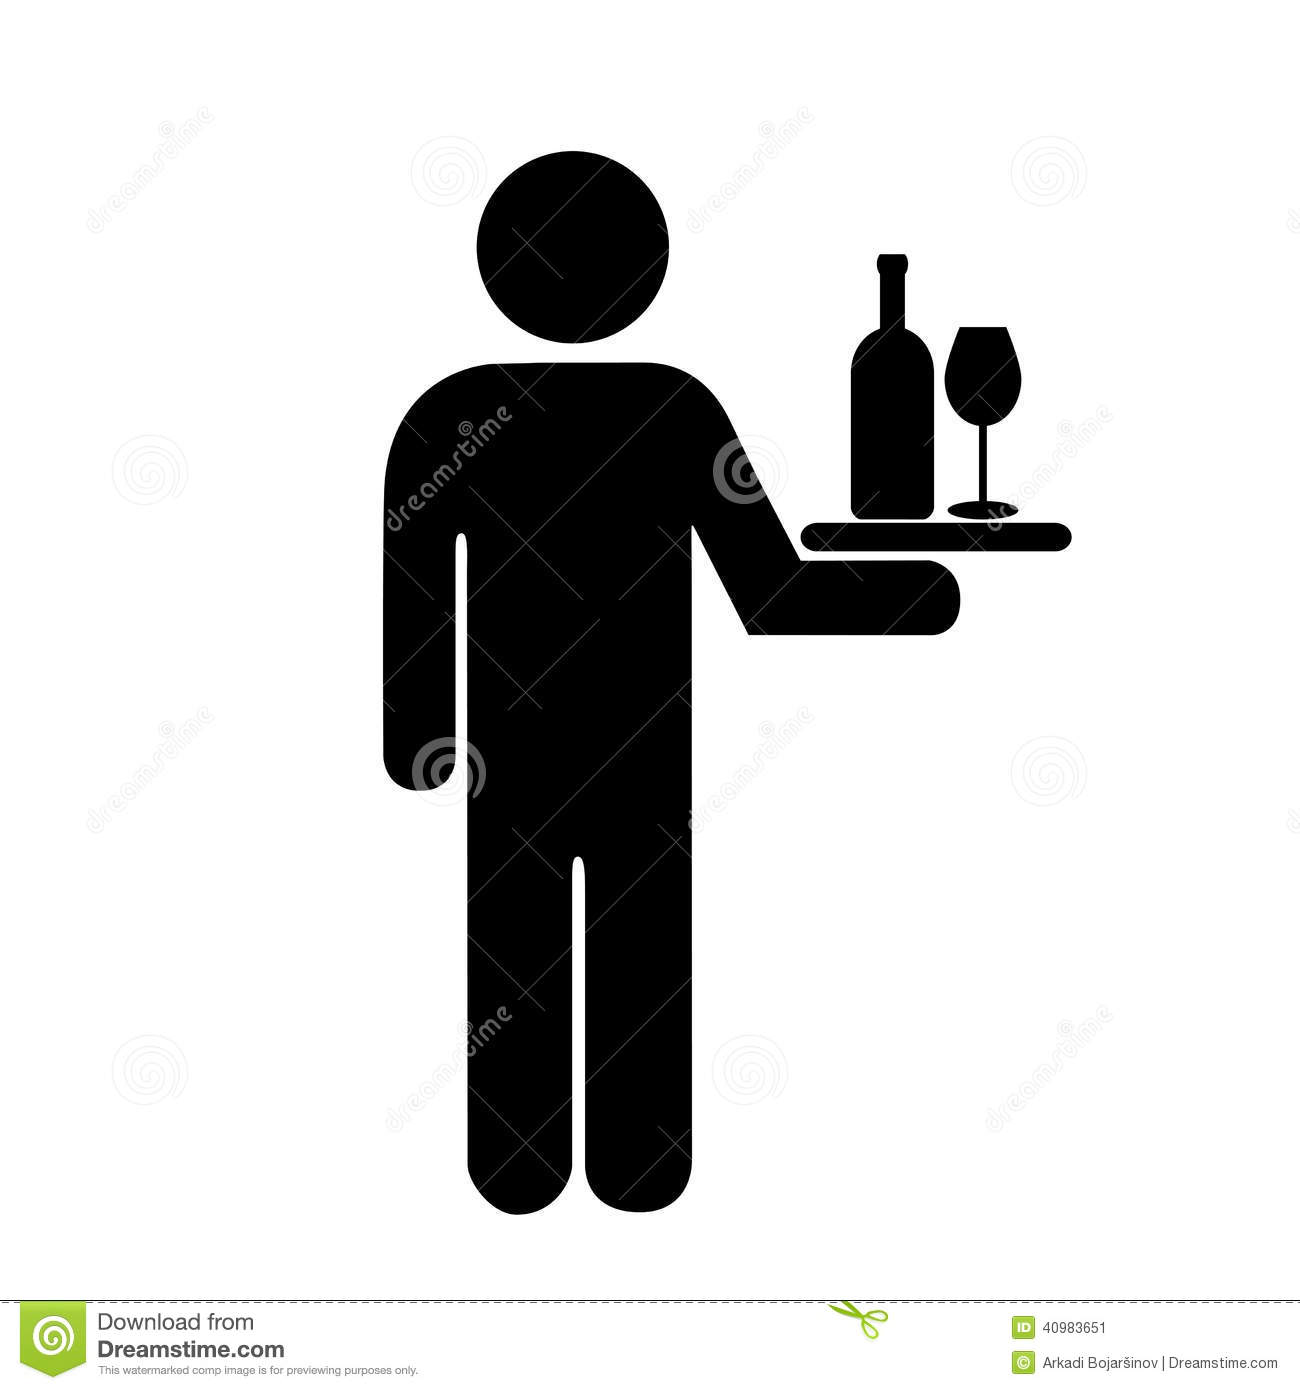 Waiter Icon Stock Vector - Image: 40983651